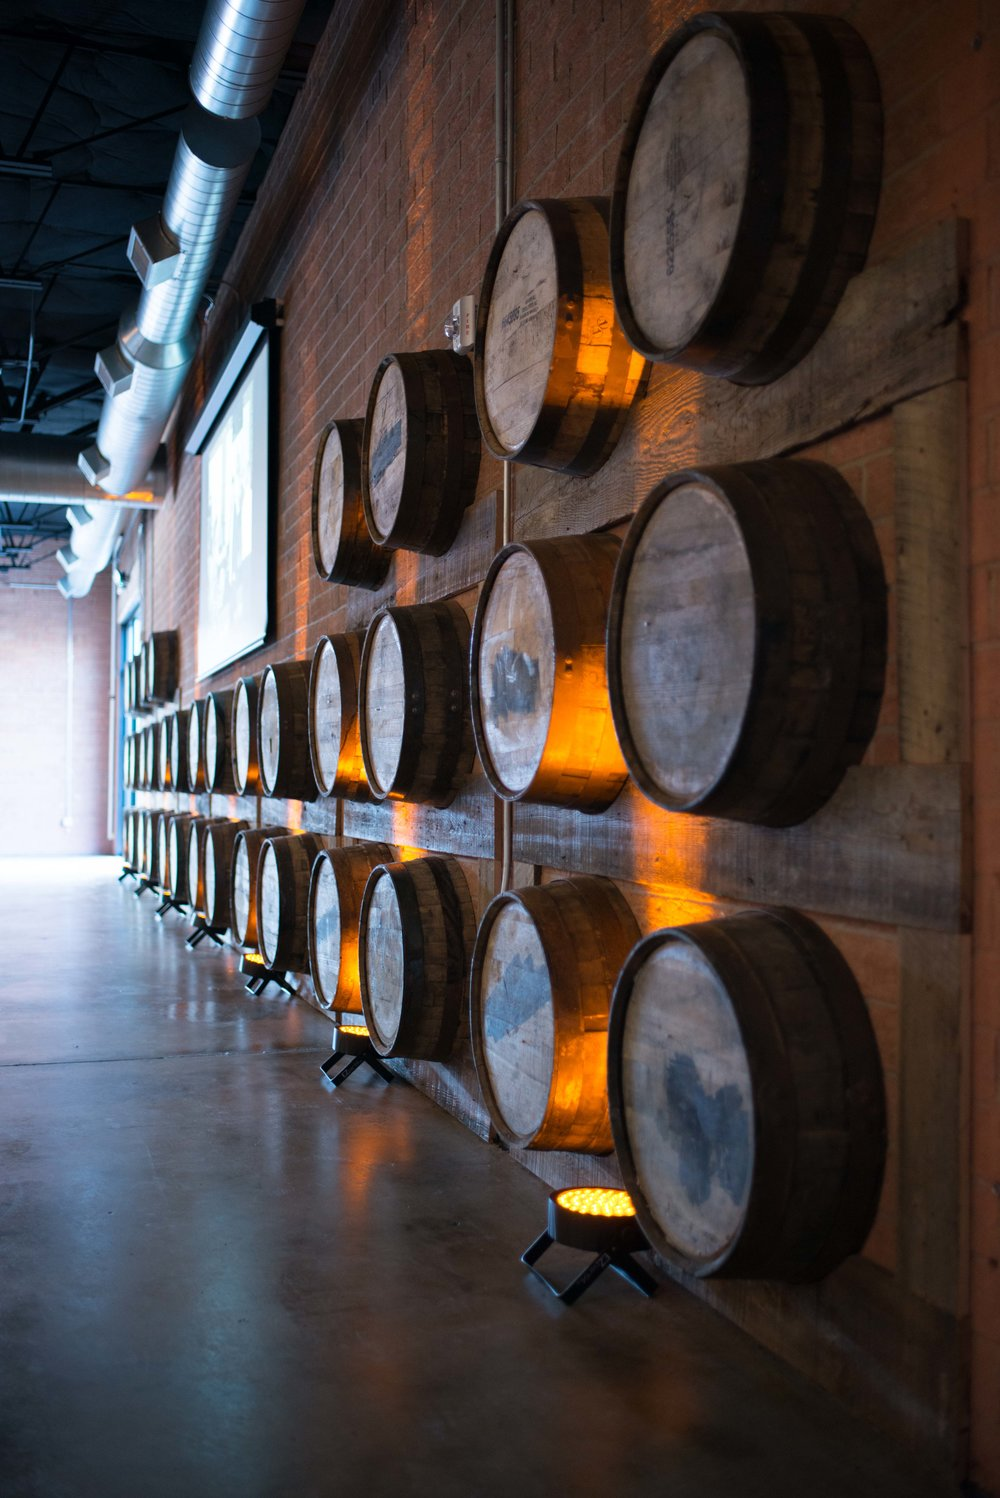 TripleC_BarrelRoom-41.jpg